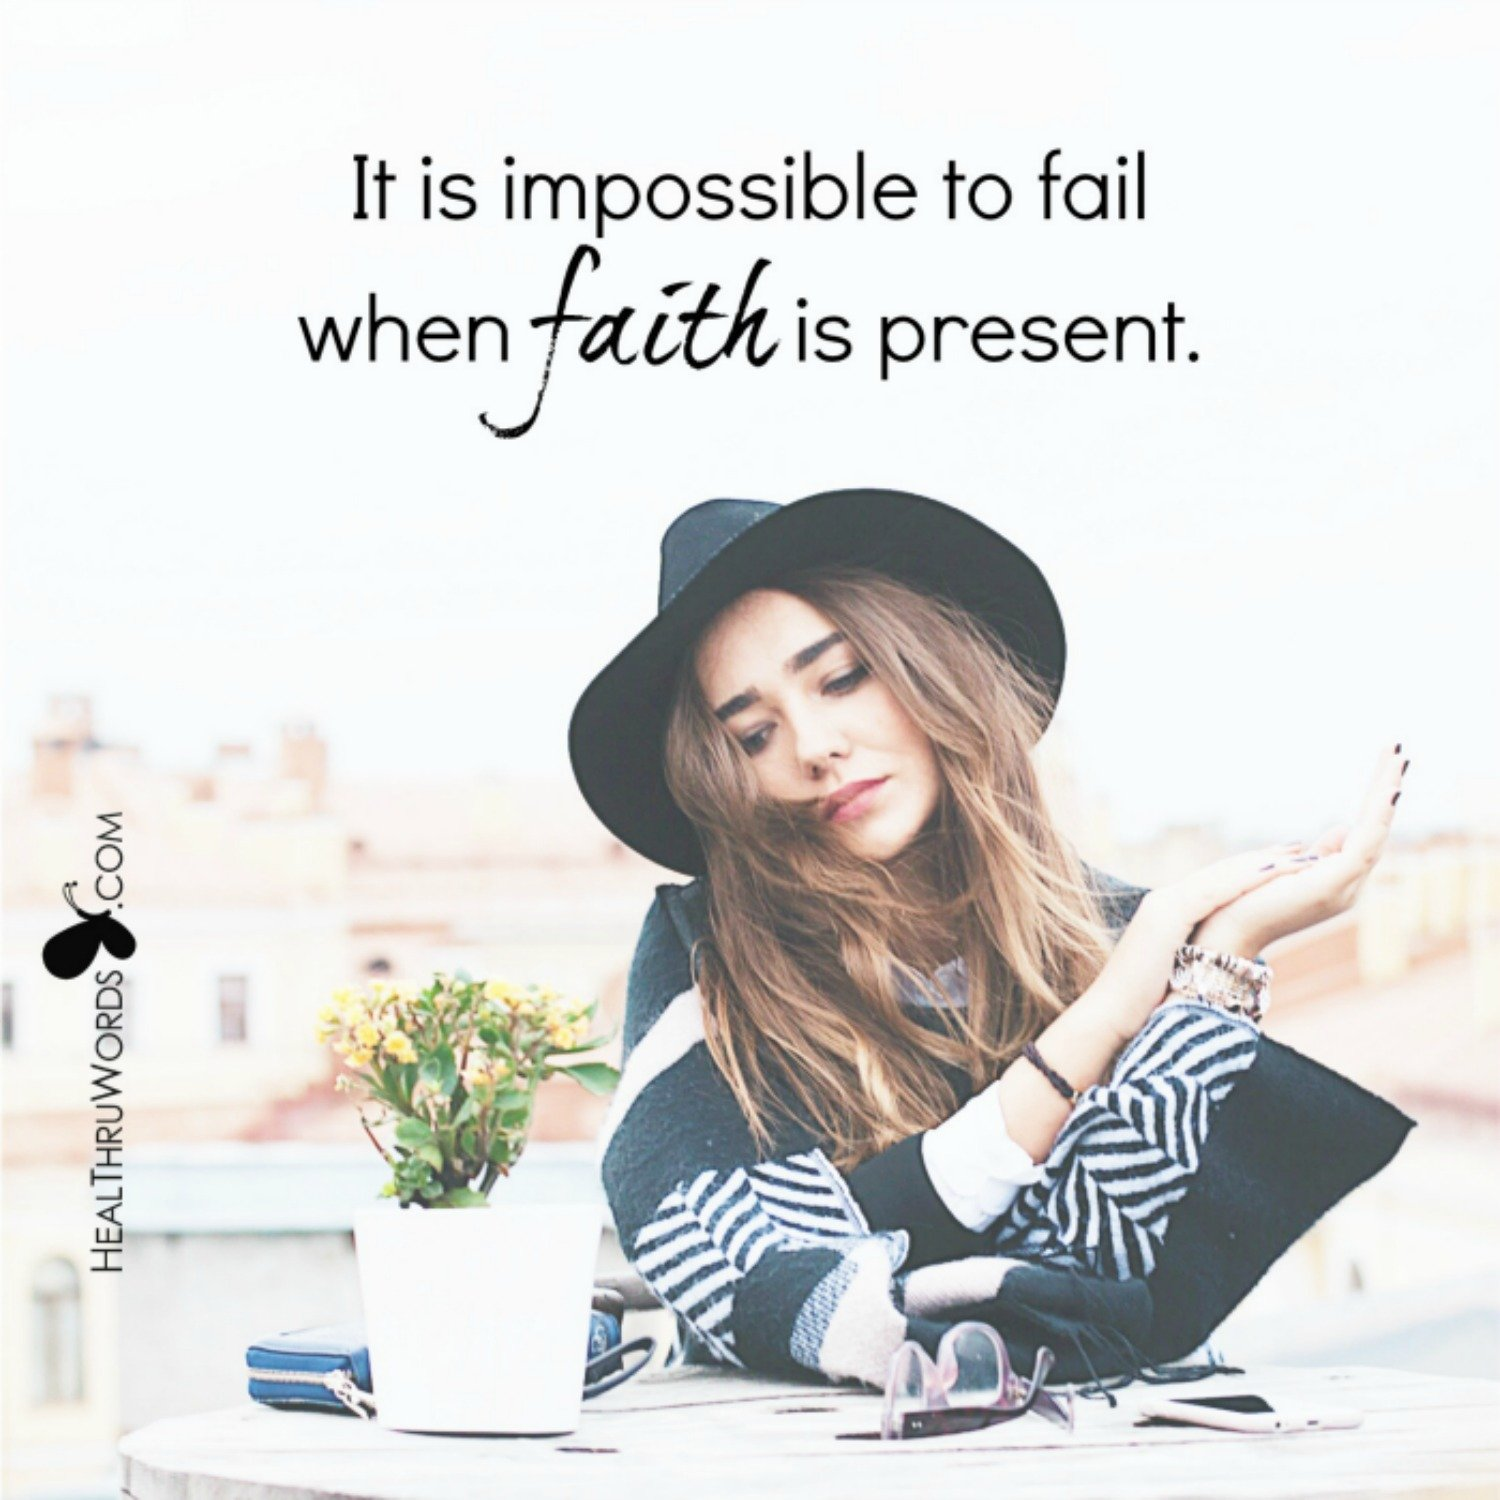 Inspirational Image: Faith Results